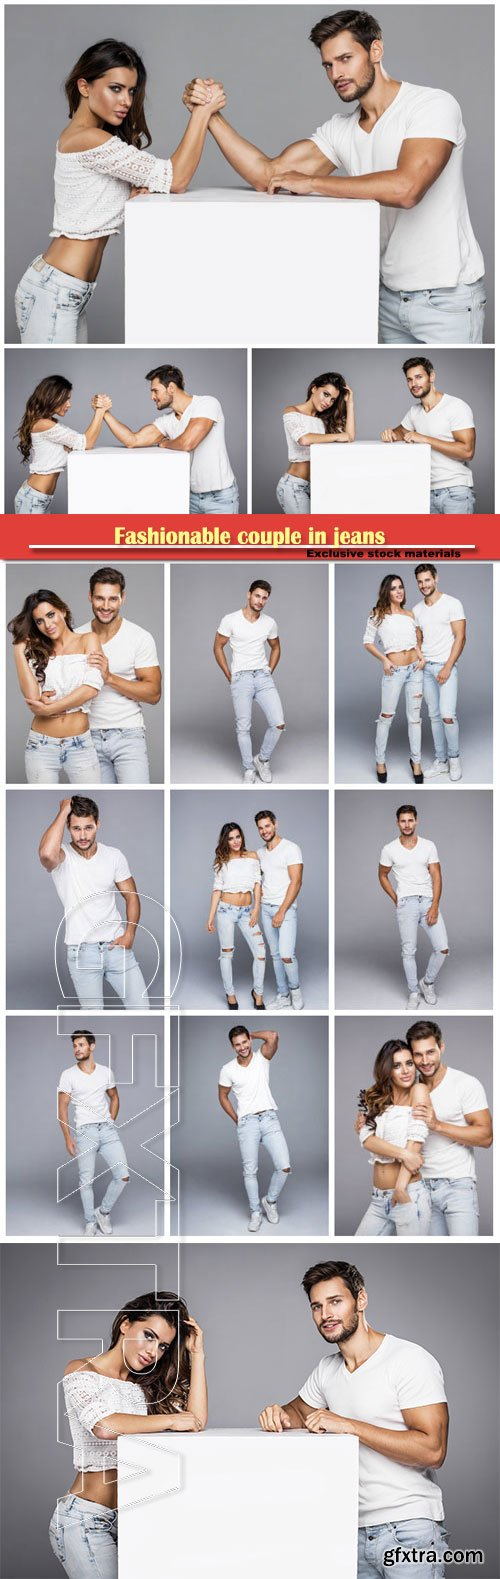 Fashionable couple in jeans